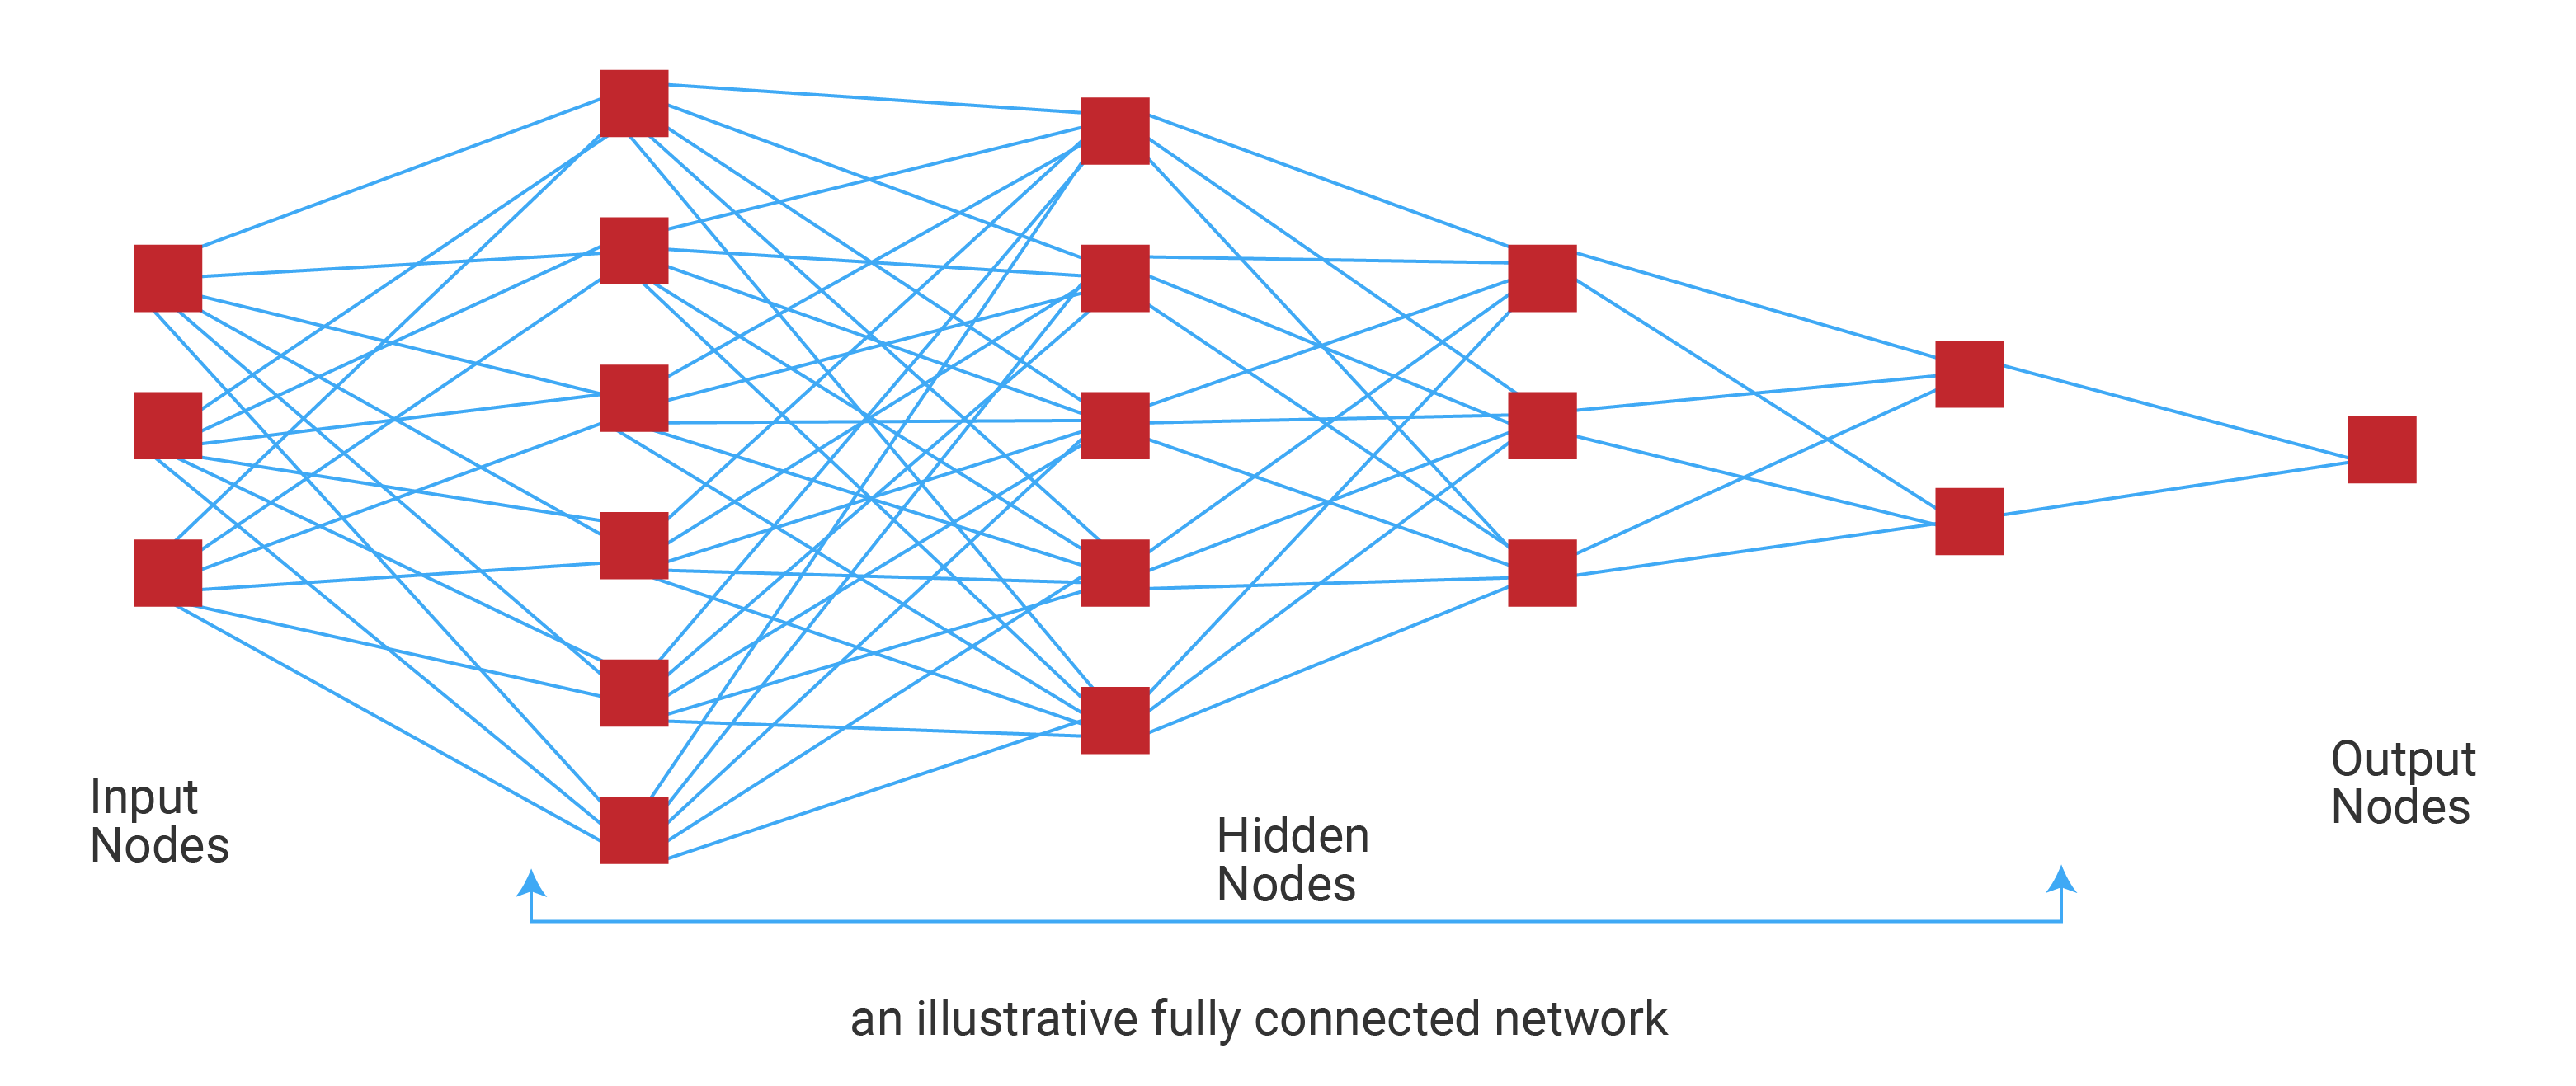 An-illustrated-fully-connected-network